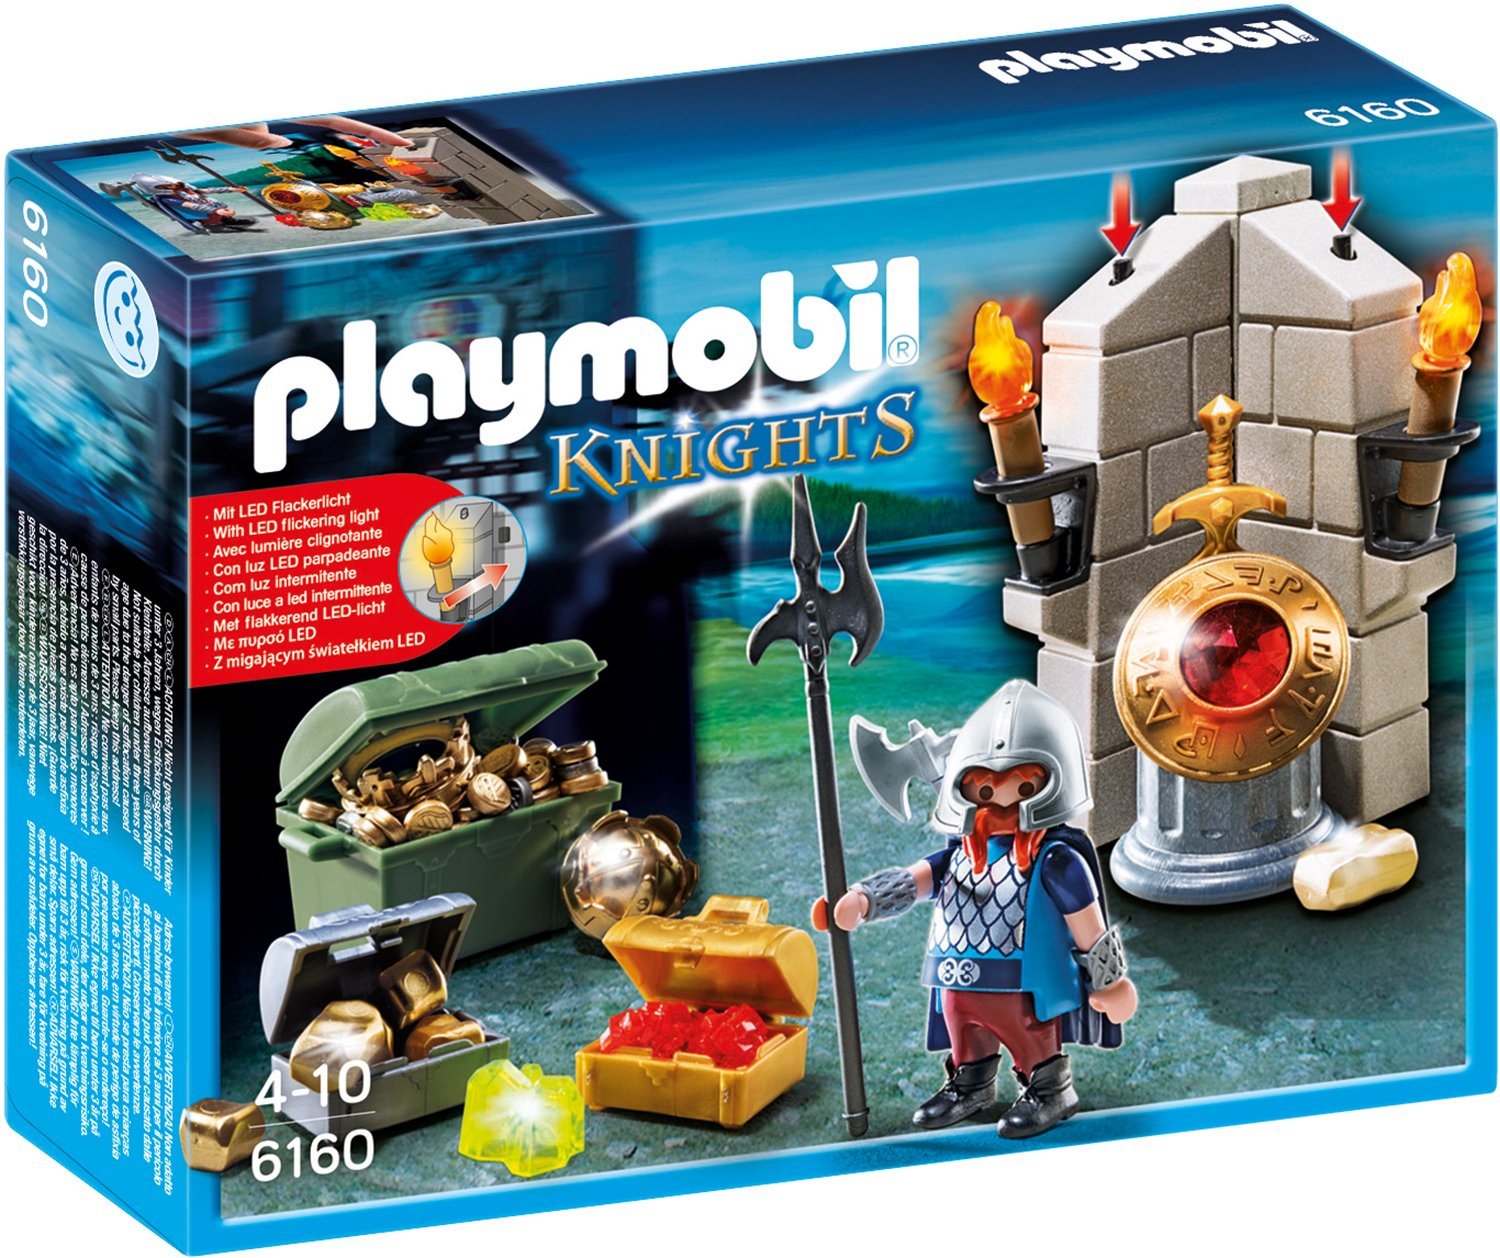 Playmobil Knights - Playmobil Ritterburg Zubehör - Playmobl Ritter Figuren